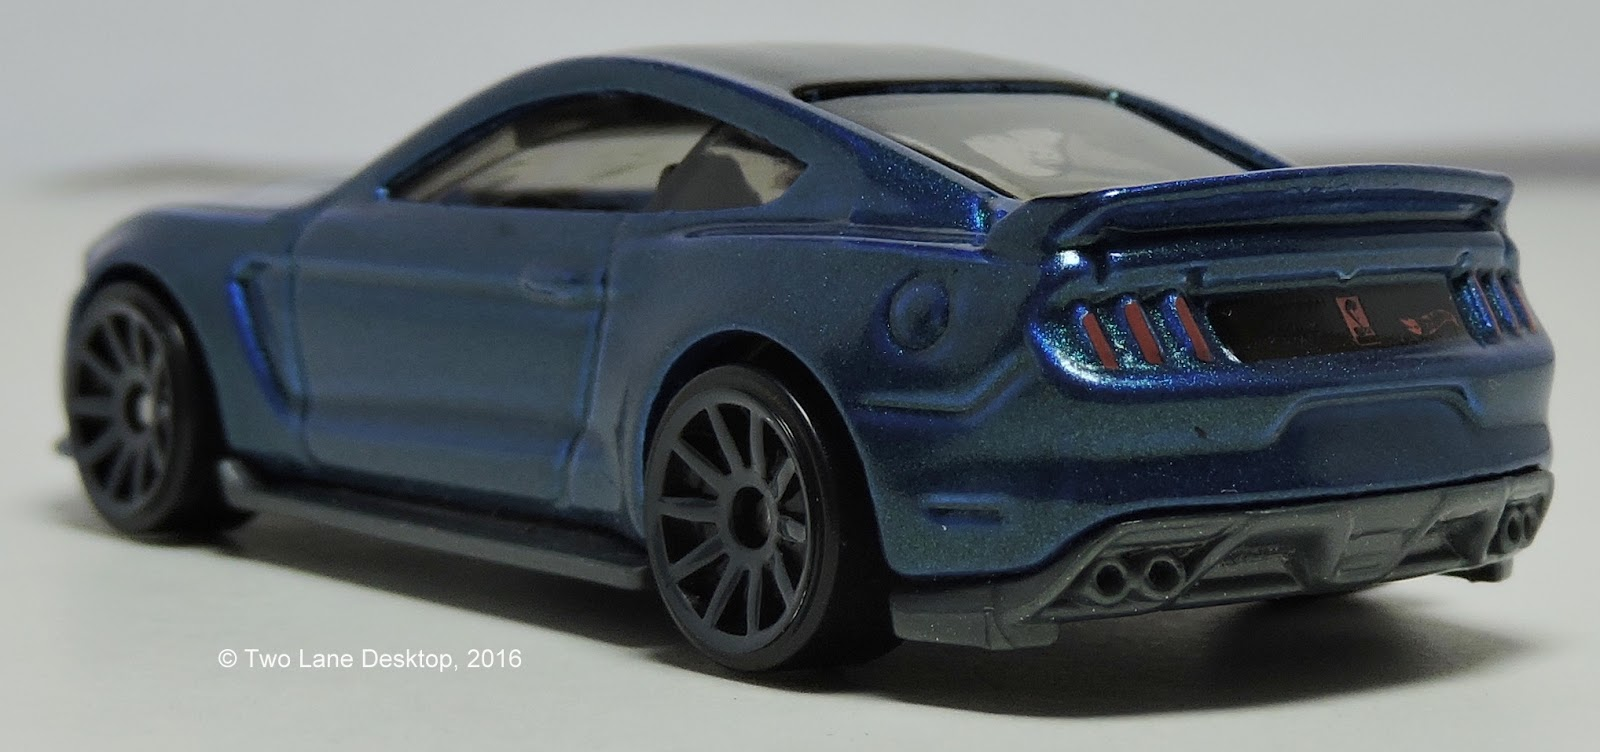 2017 Mustang Shelby Gt350 Black >> Two Lane Desktop: Hot Wheels 2017 Ford Mustang Shelby GT350R